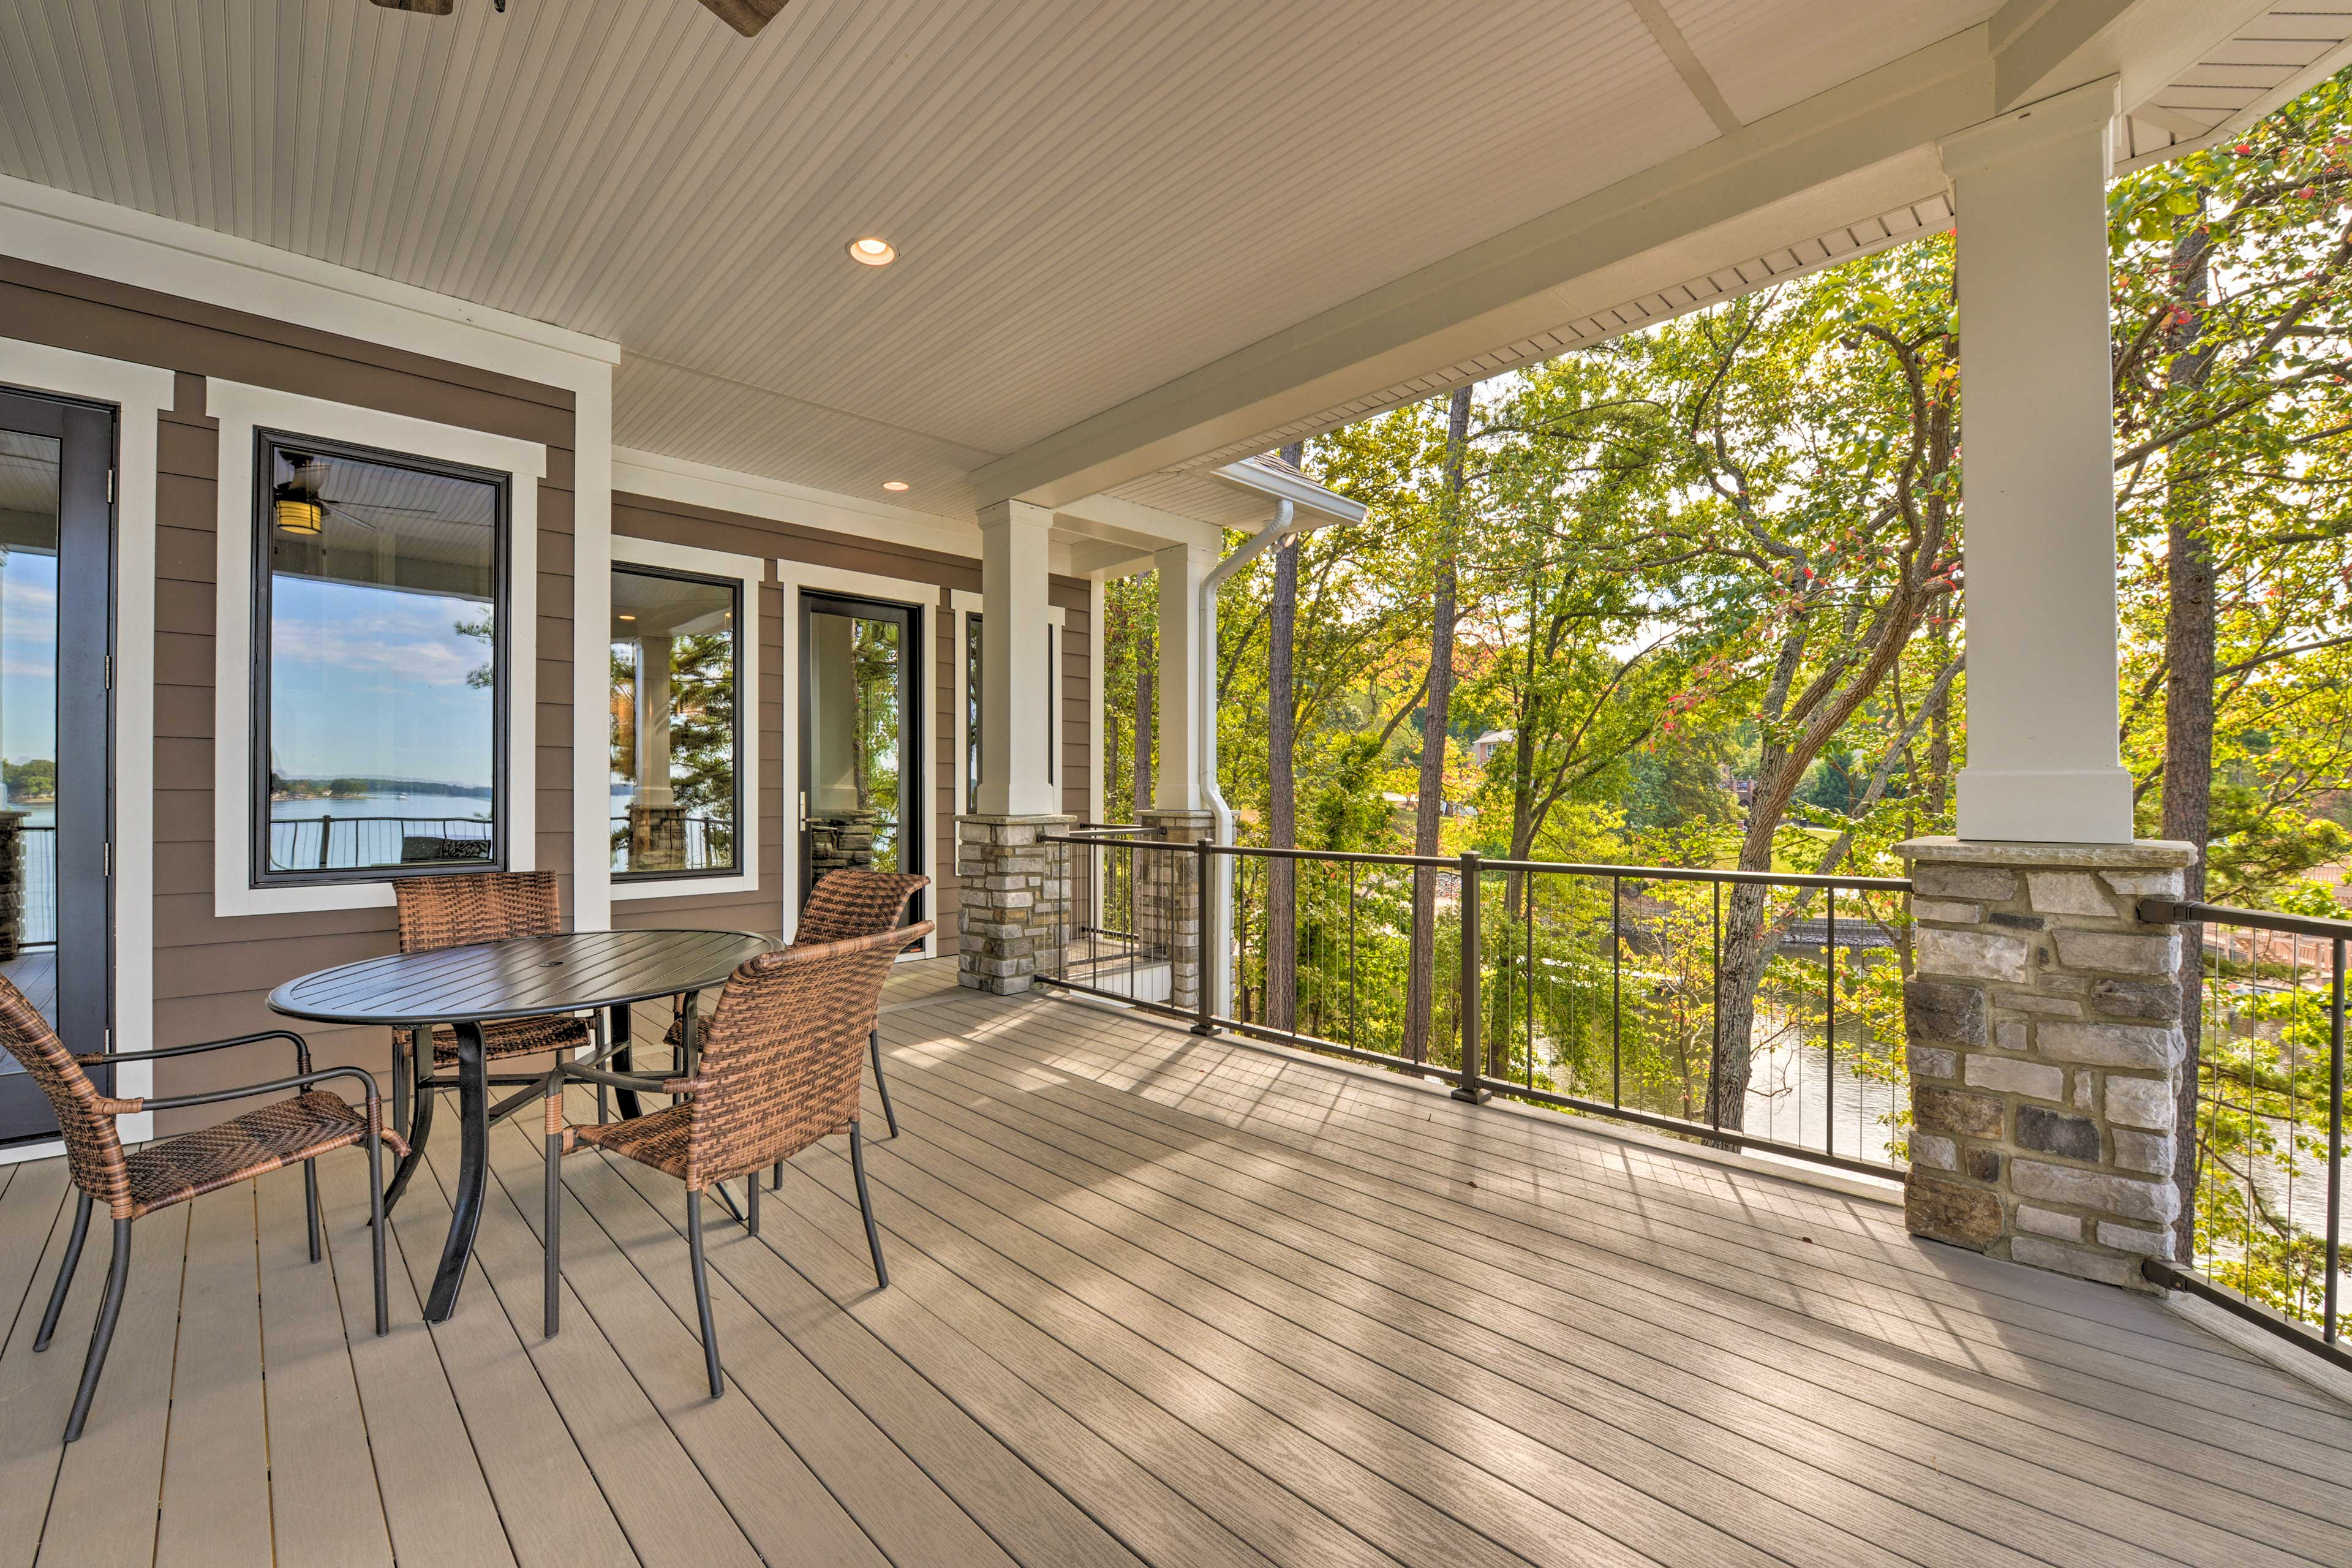 You'll love spending time on this lakefront deck, relaxing and eating!